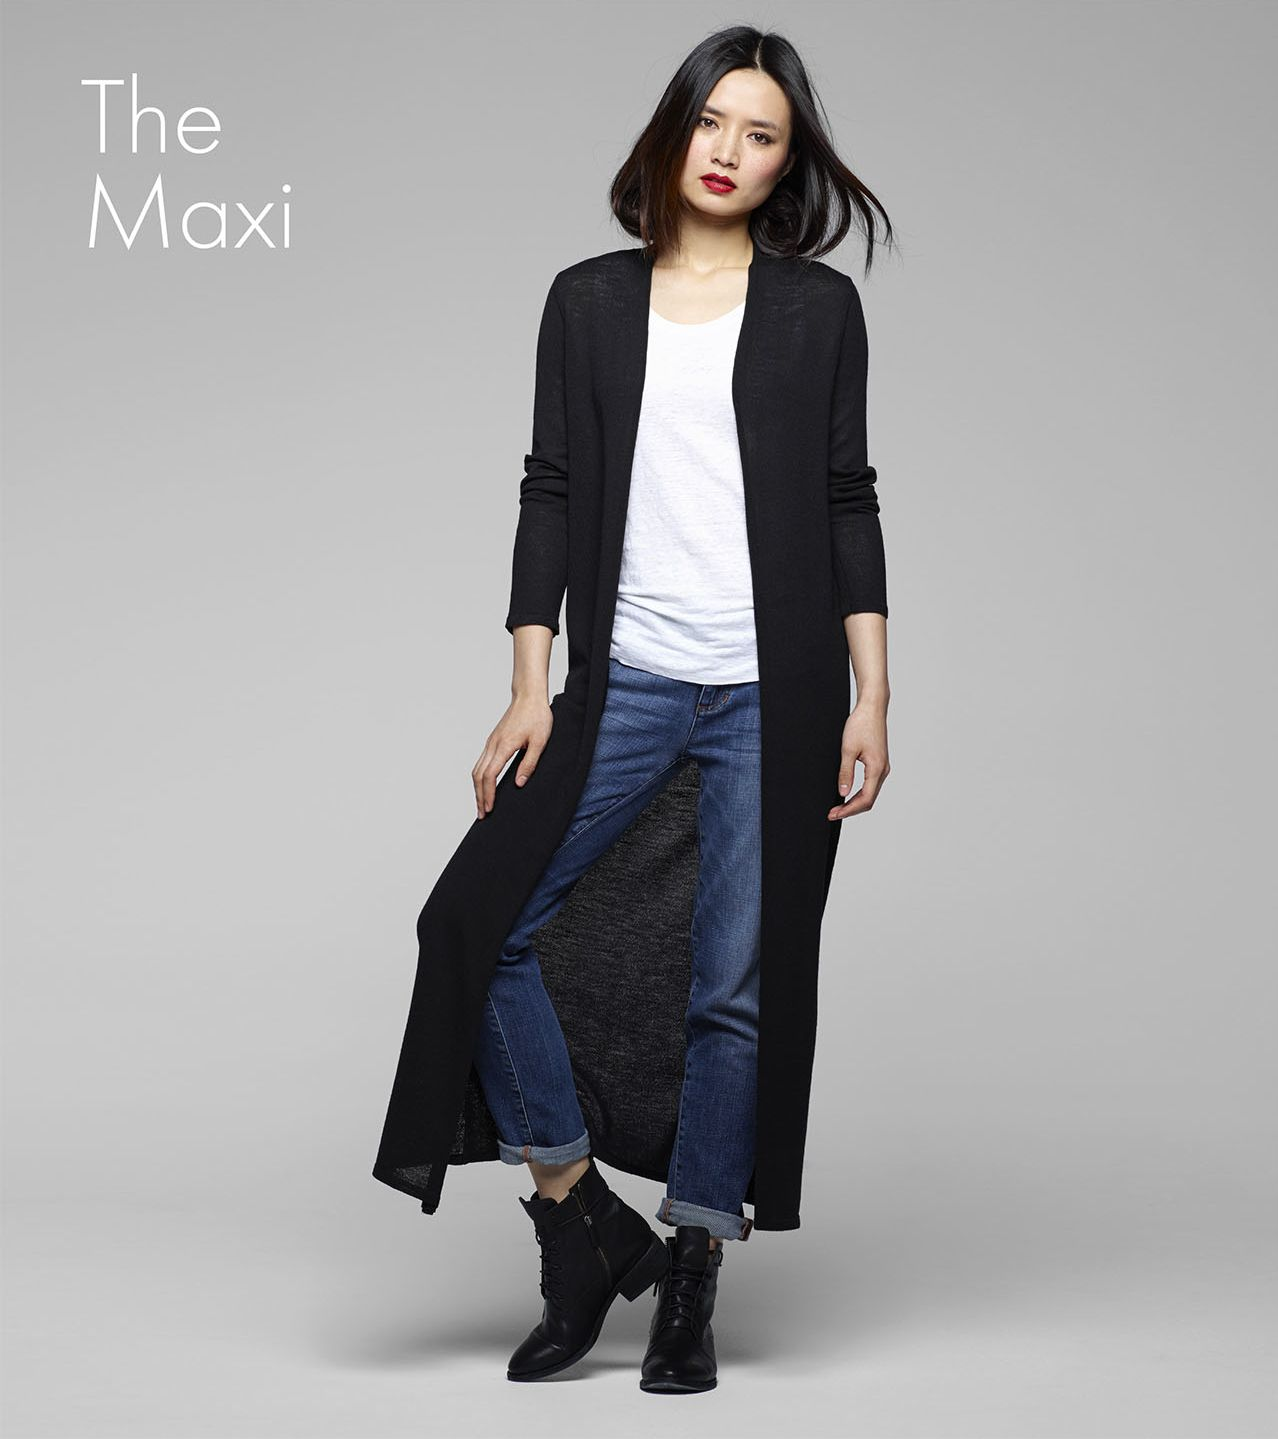 eileen fisher icons collection : the maxi cardigan #EF30. Tempting ...